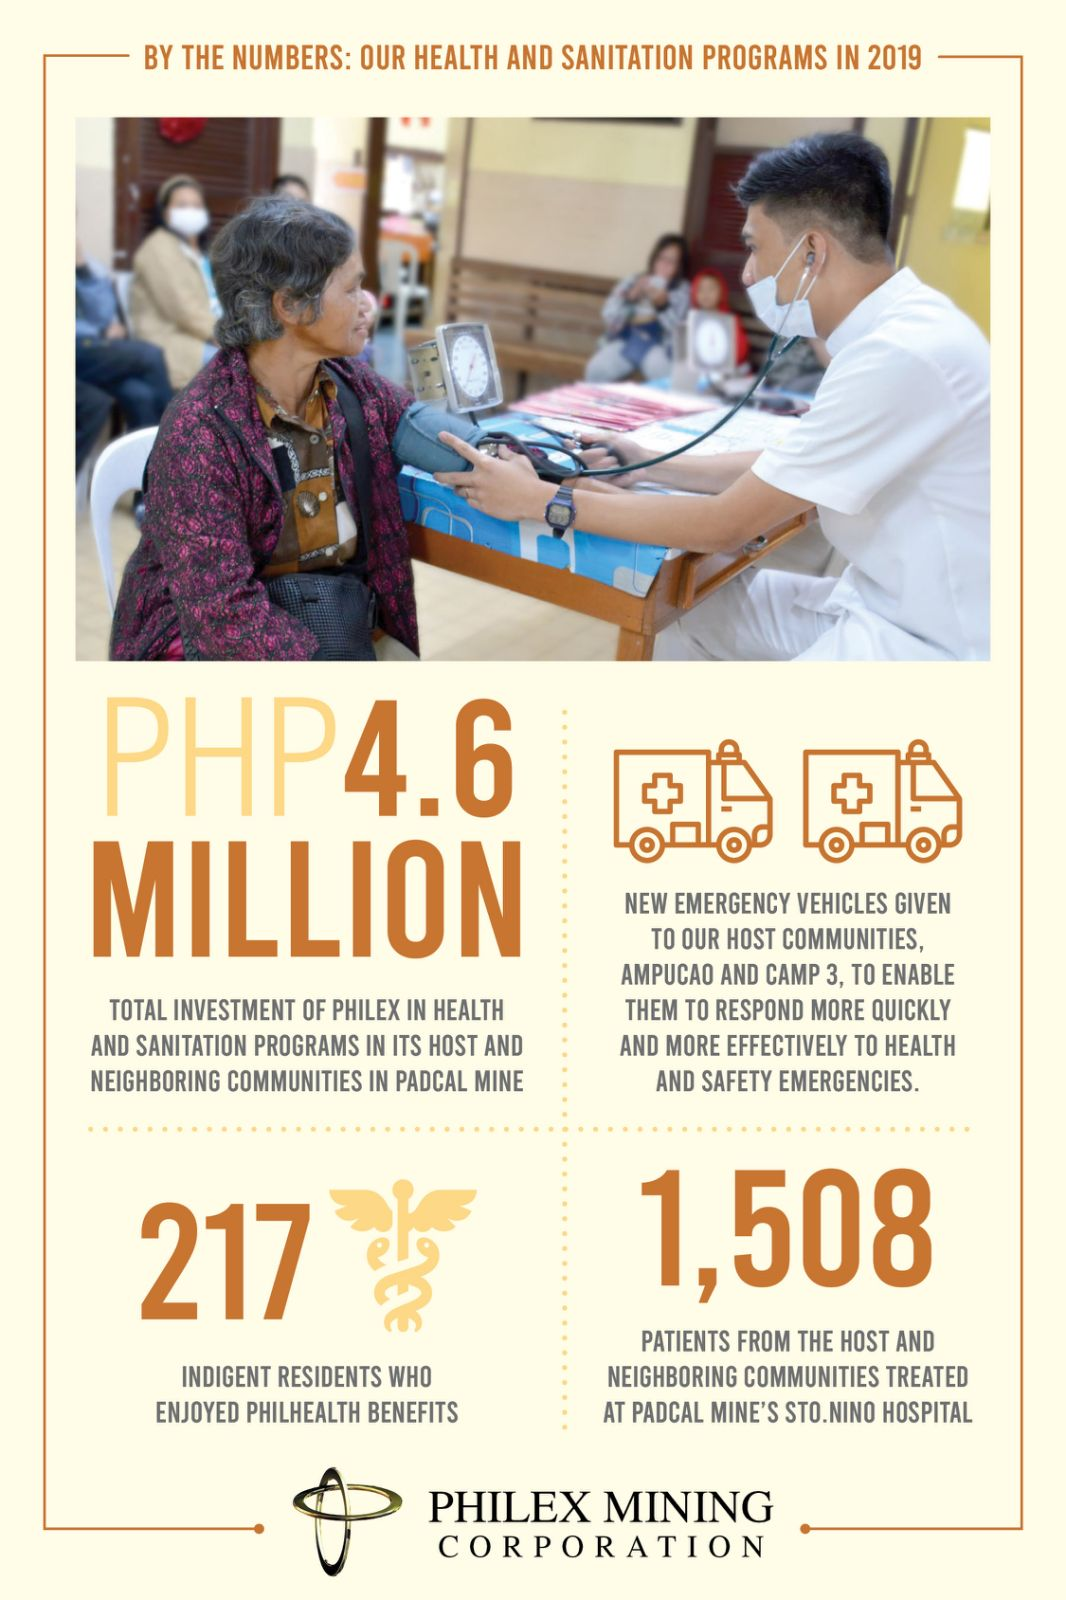 Our Health and Sanitation Programs in 2019